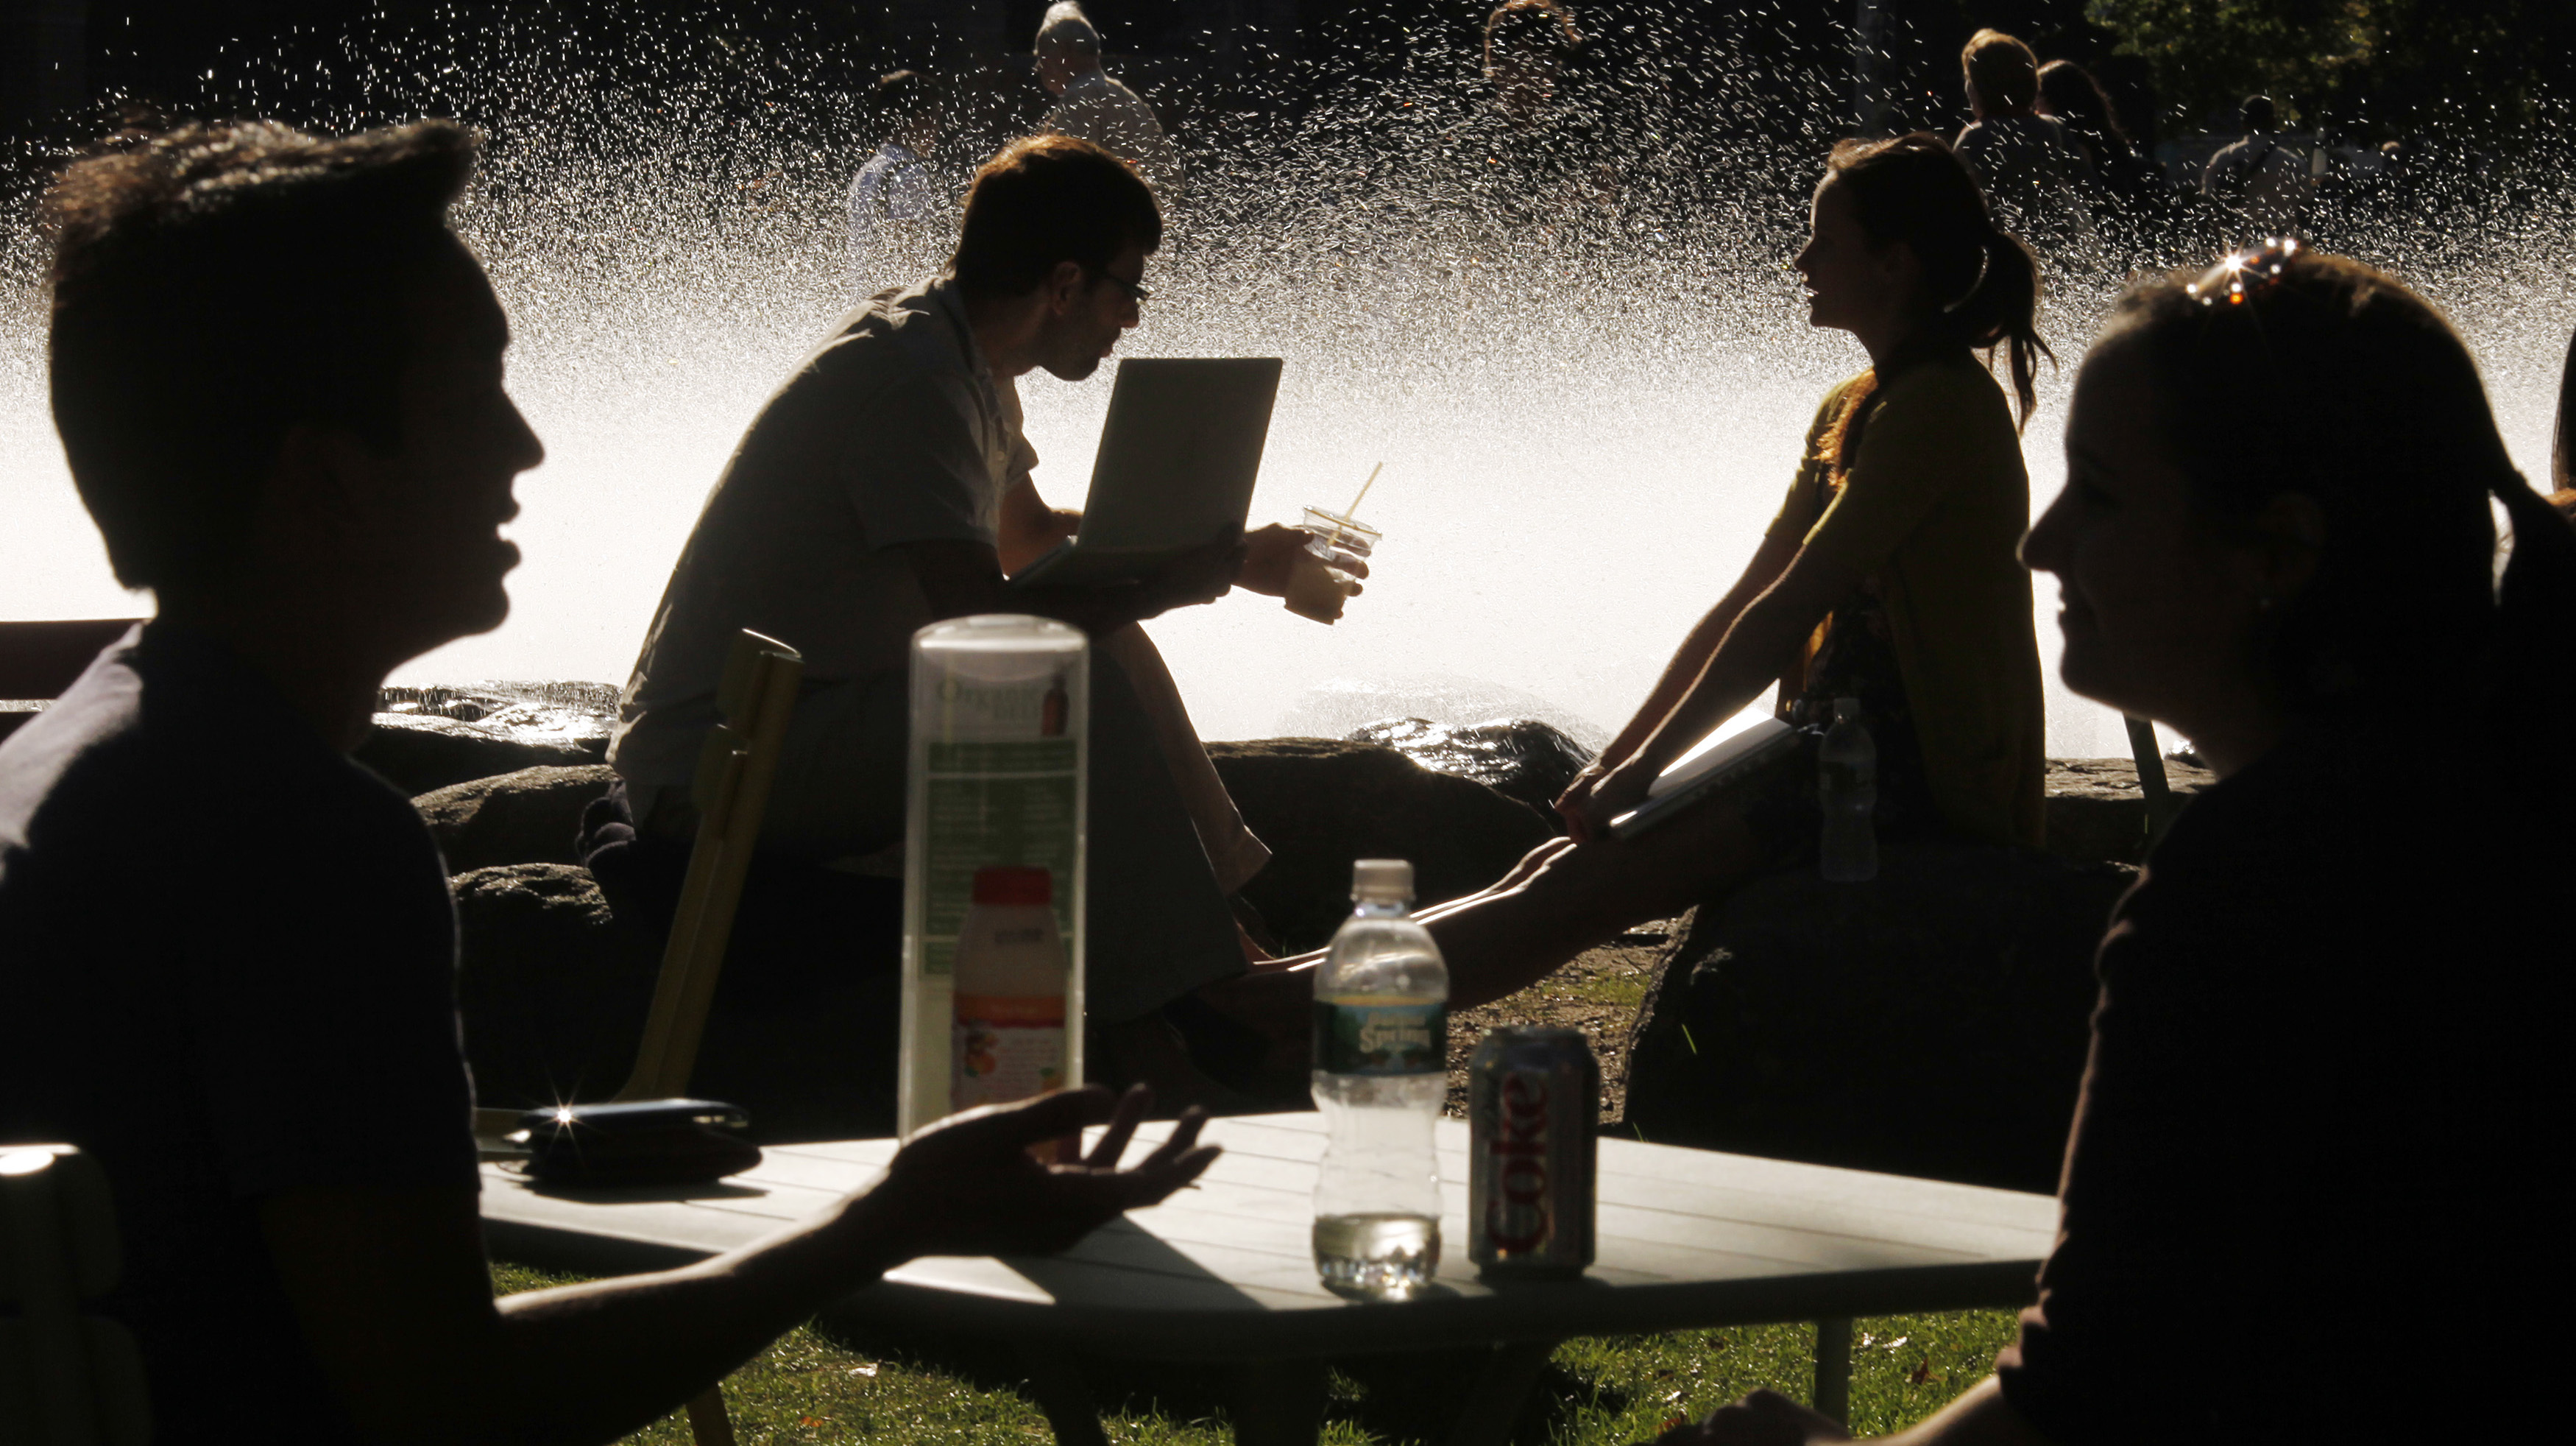 Students and visitors sit in front of a fountain at Harvard University in Cambridge, Massachusetts September 21, 2009.